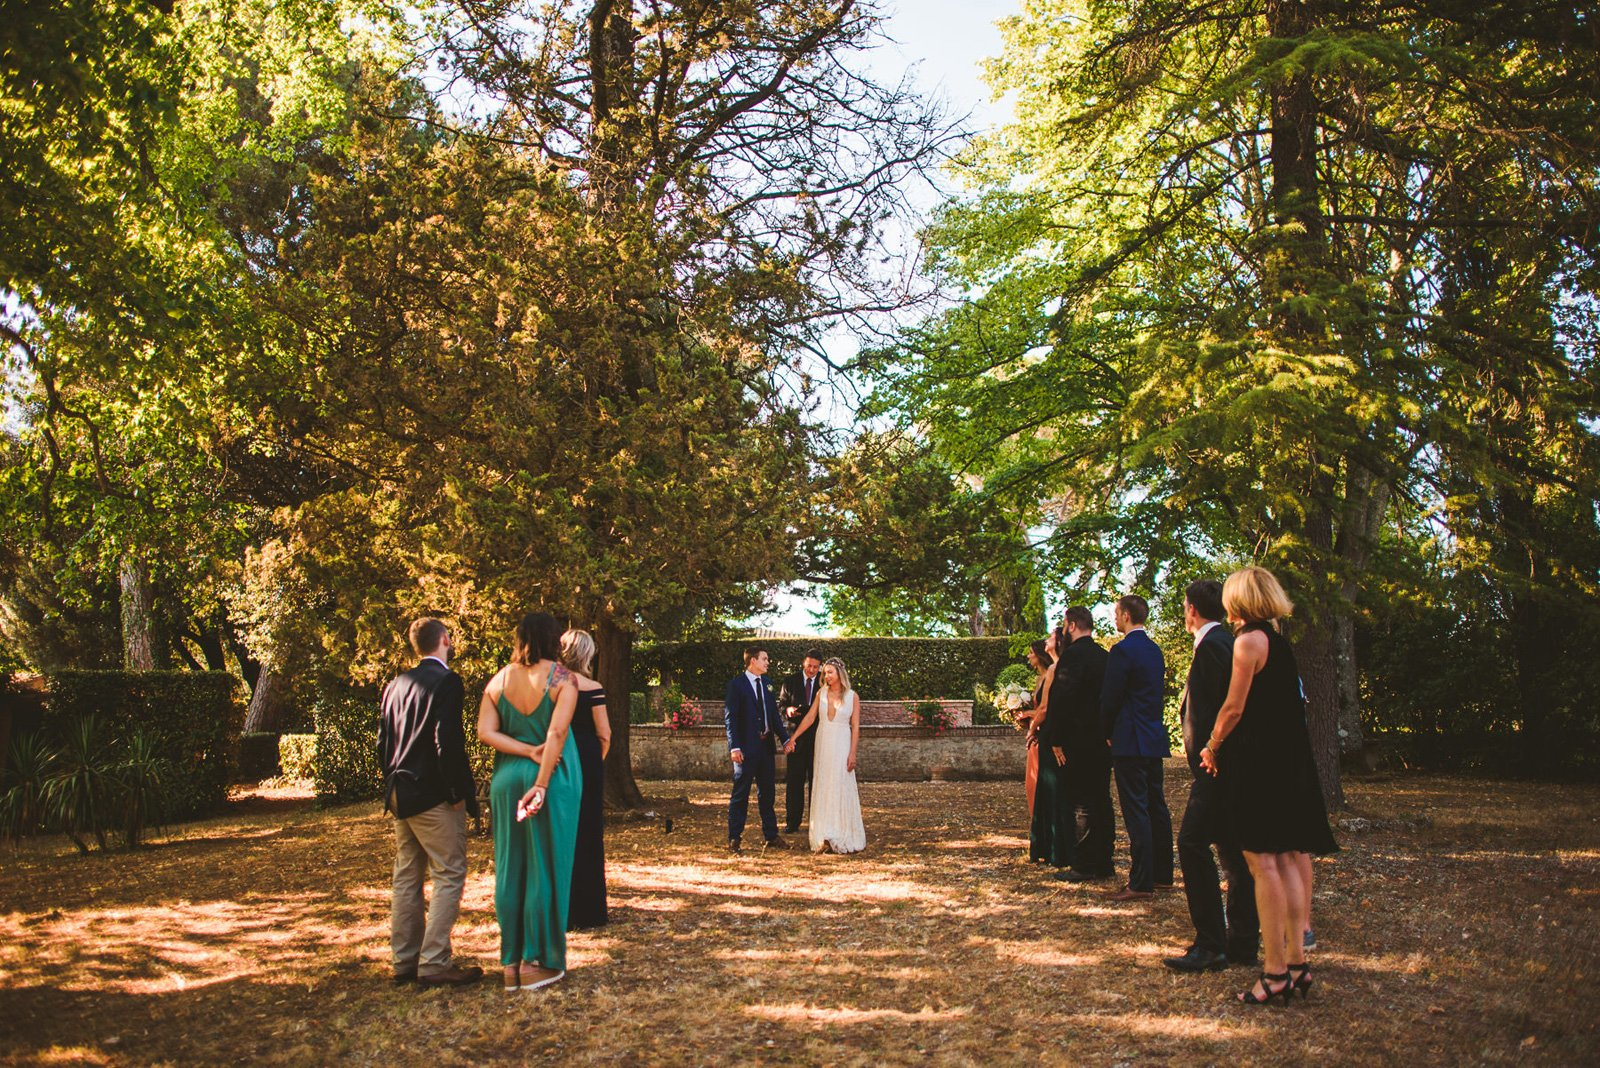 A+L Wedding at Montechiaro, Siena by Federico Pannacci 60